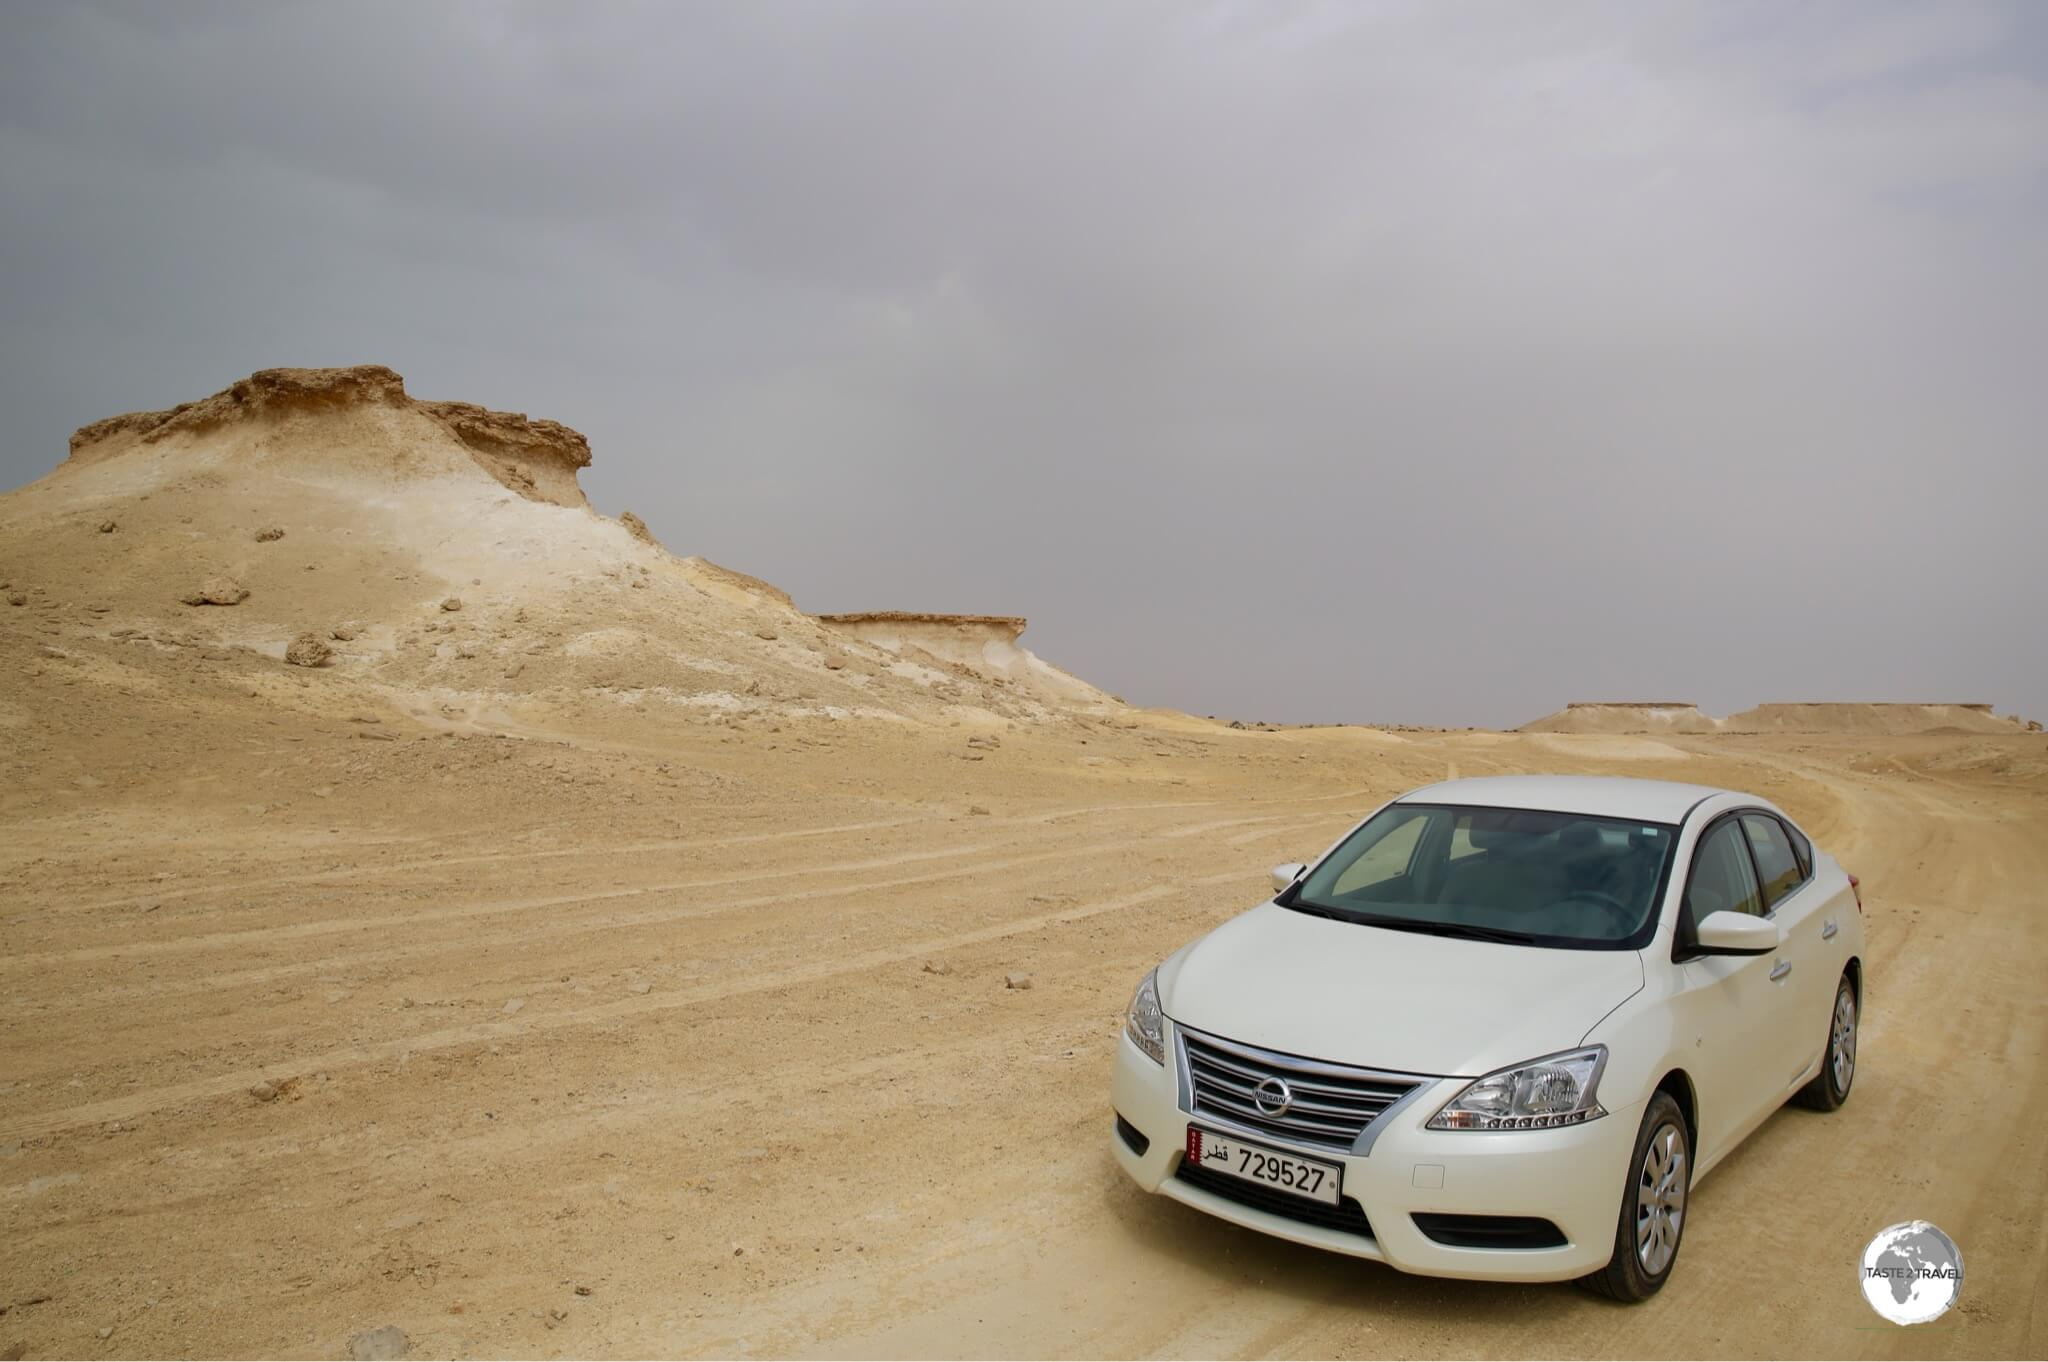 Off road in my rental car, exploring the landscapes near Zekreet.